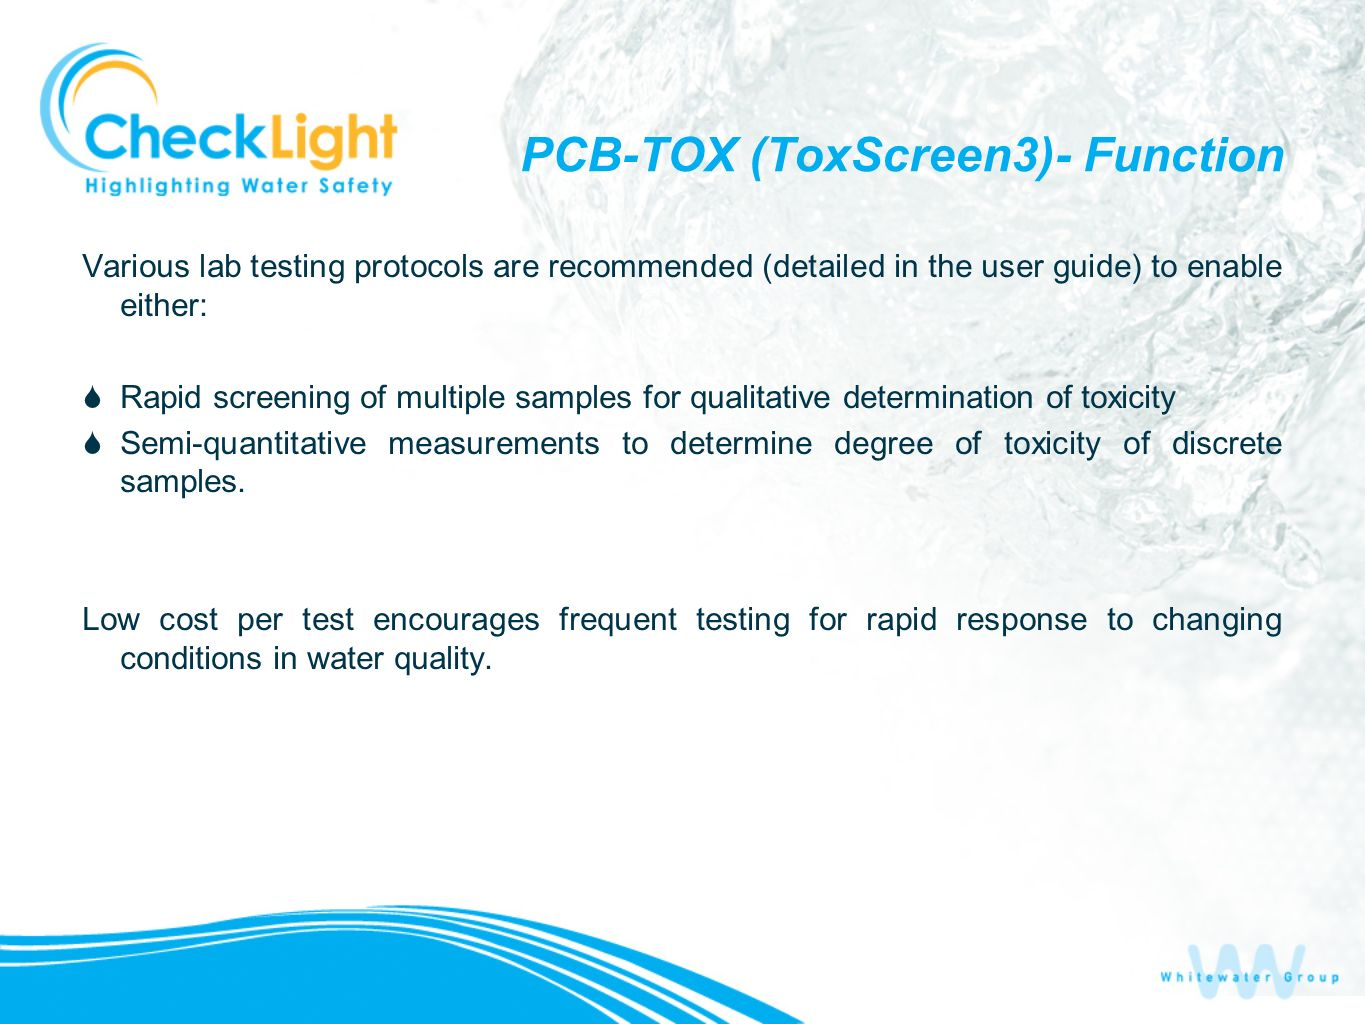 PCB-TOX (ToxScreen3)- Function